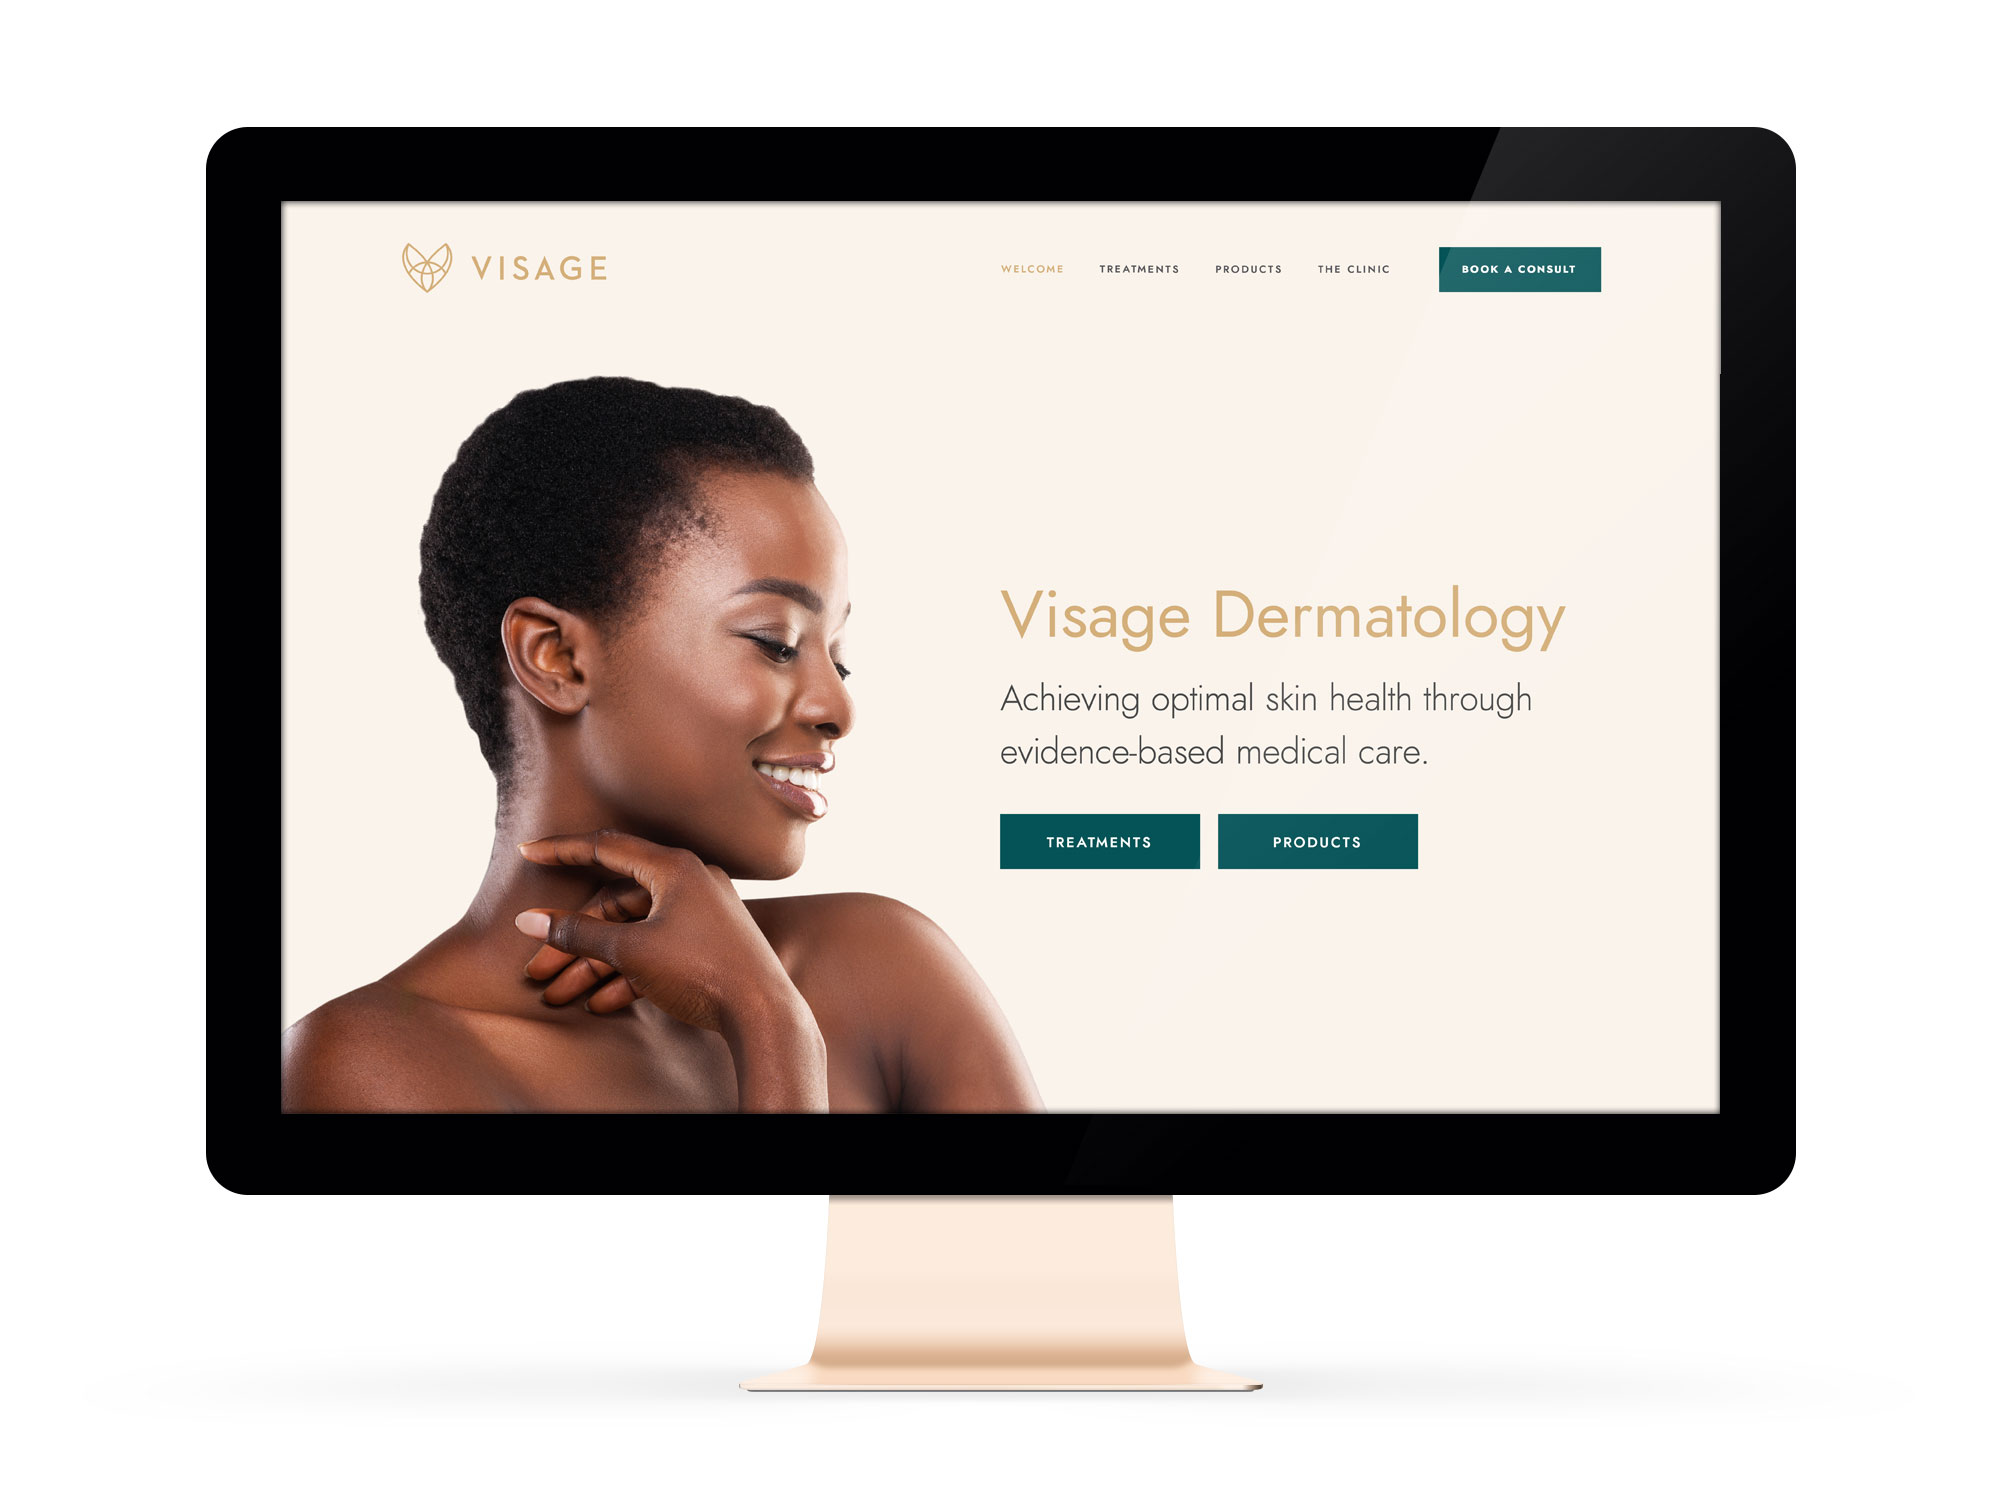 Visage Dermatology Winnipeg Feminist Brands Website Design Feminist Entrepreneurs Feature